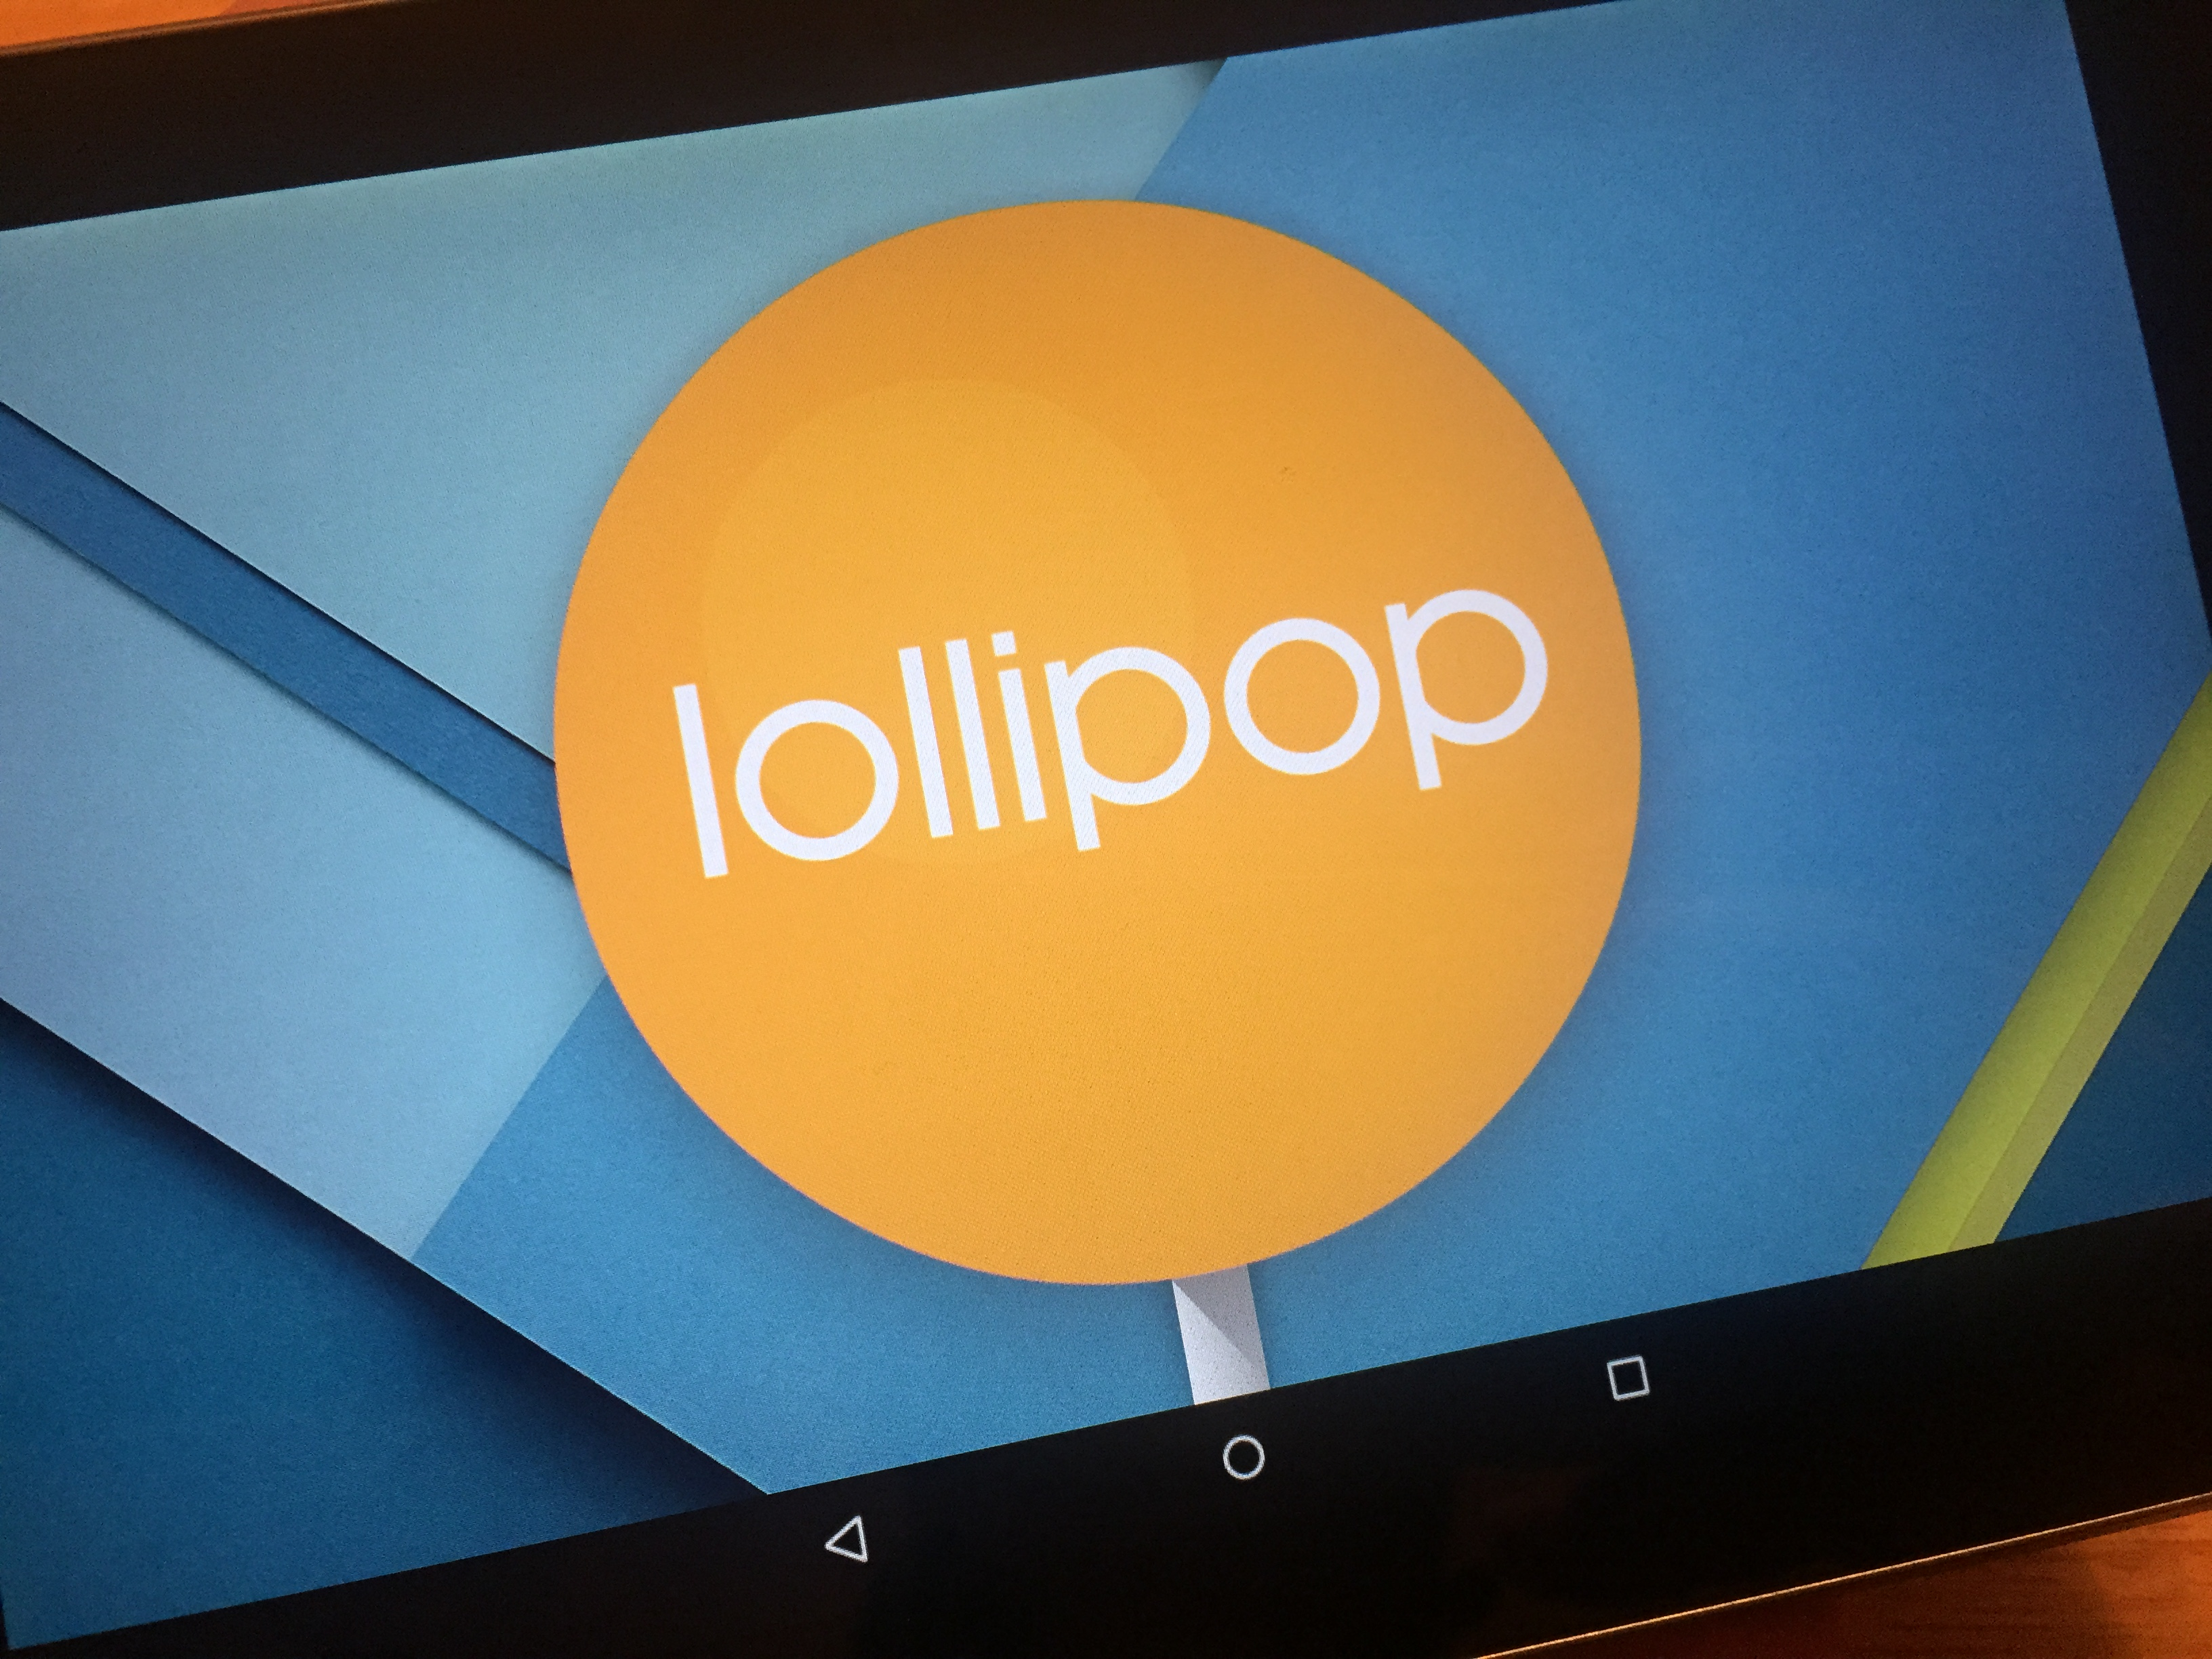 Android 5 0 1 lollipop and 5 0 2 update for nexus devices android - Here Is Our Early Nexus 7 2012 Android 5 0 2 Review